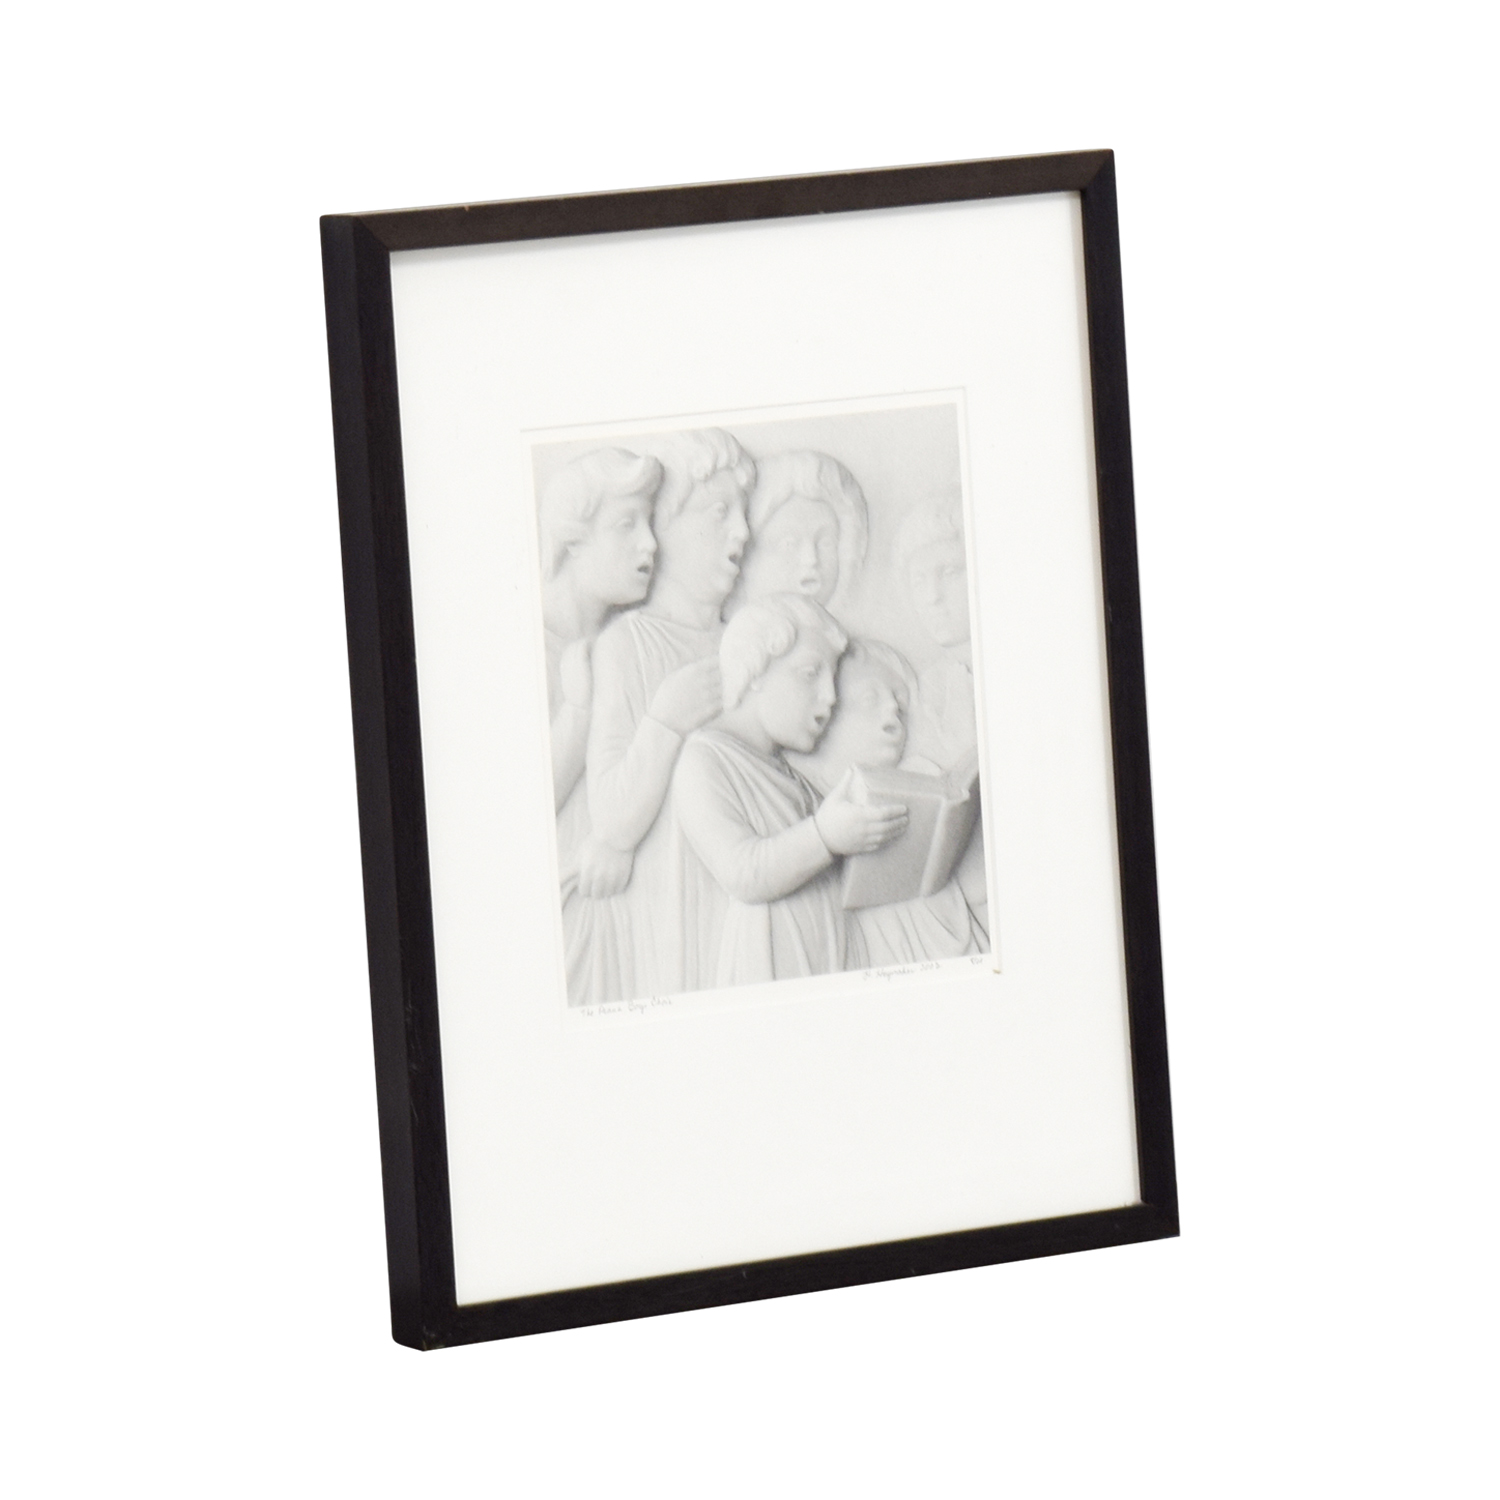 Choir Framed Artwork on sale